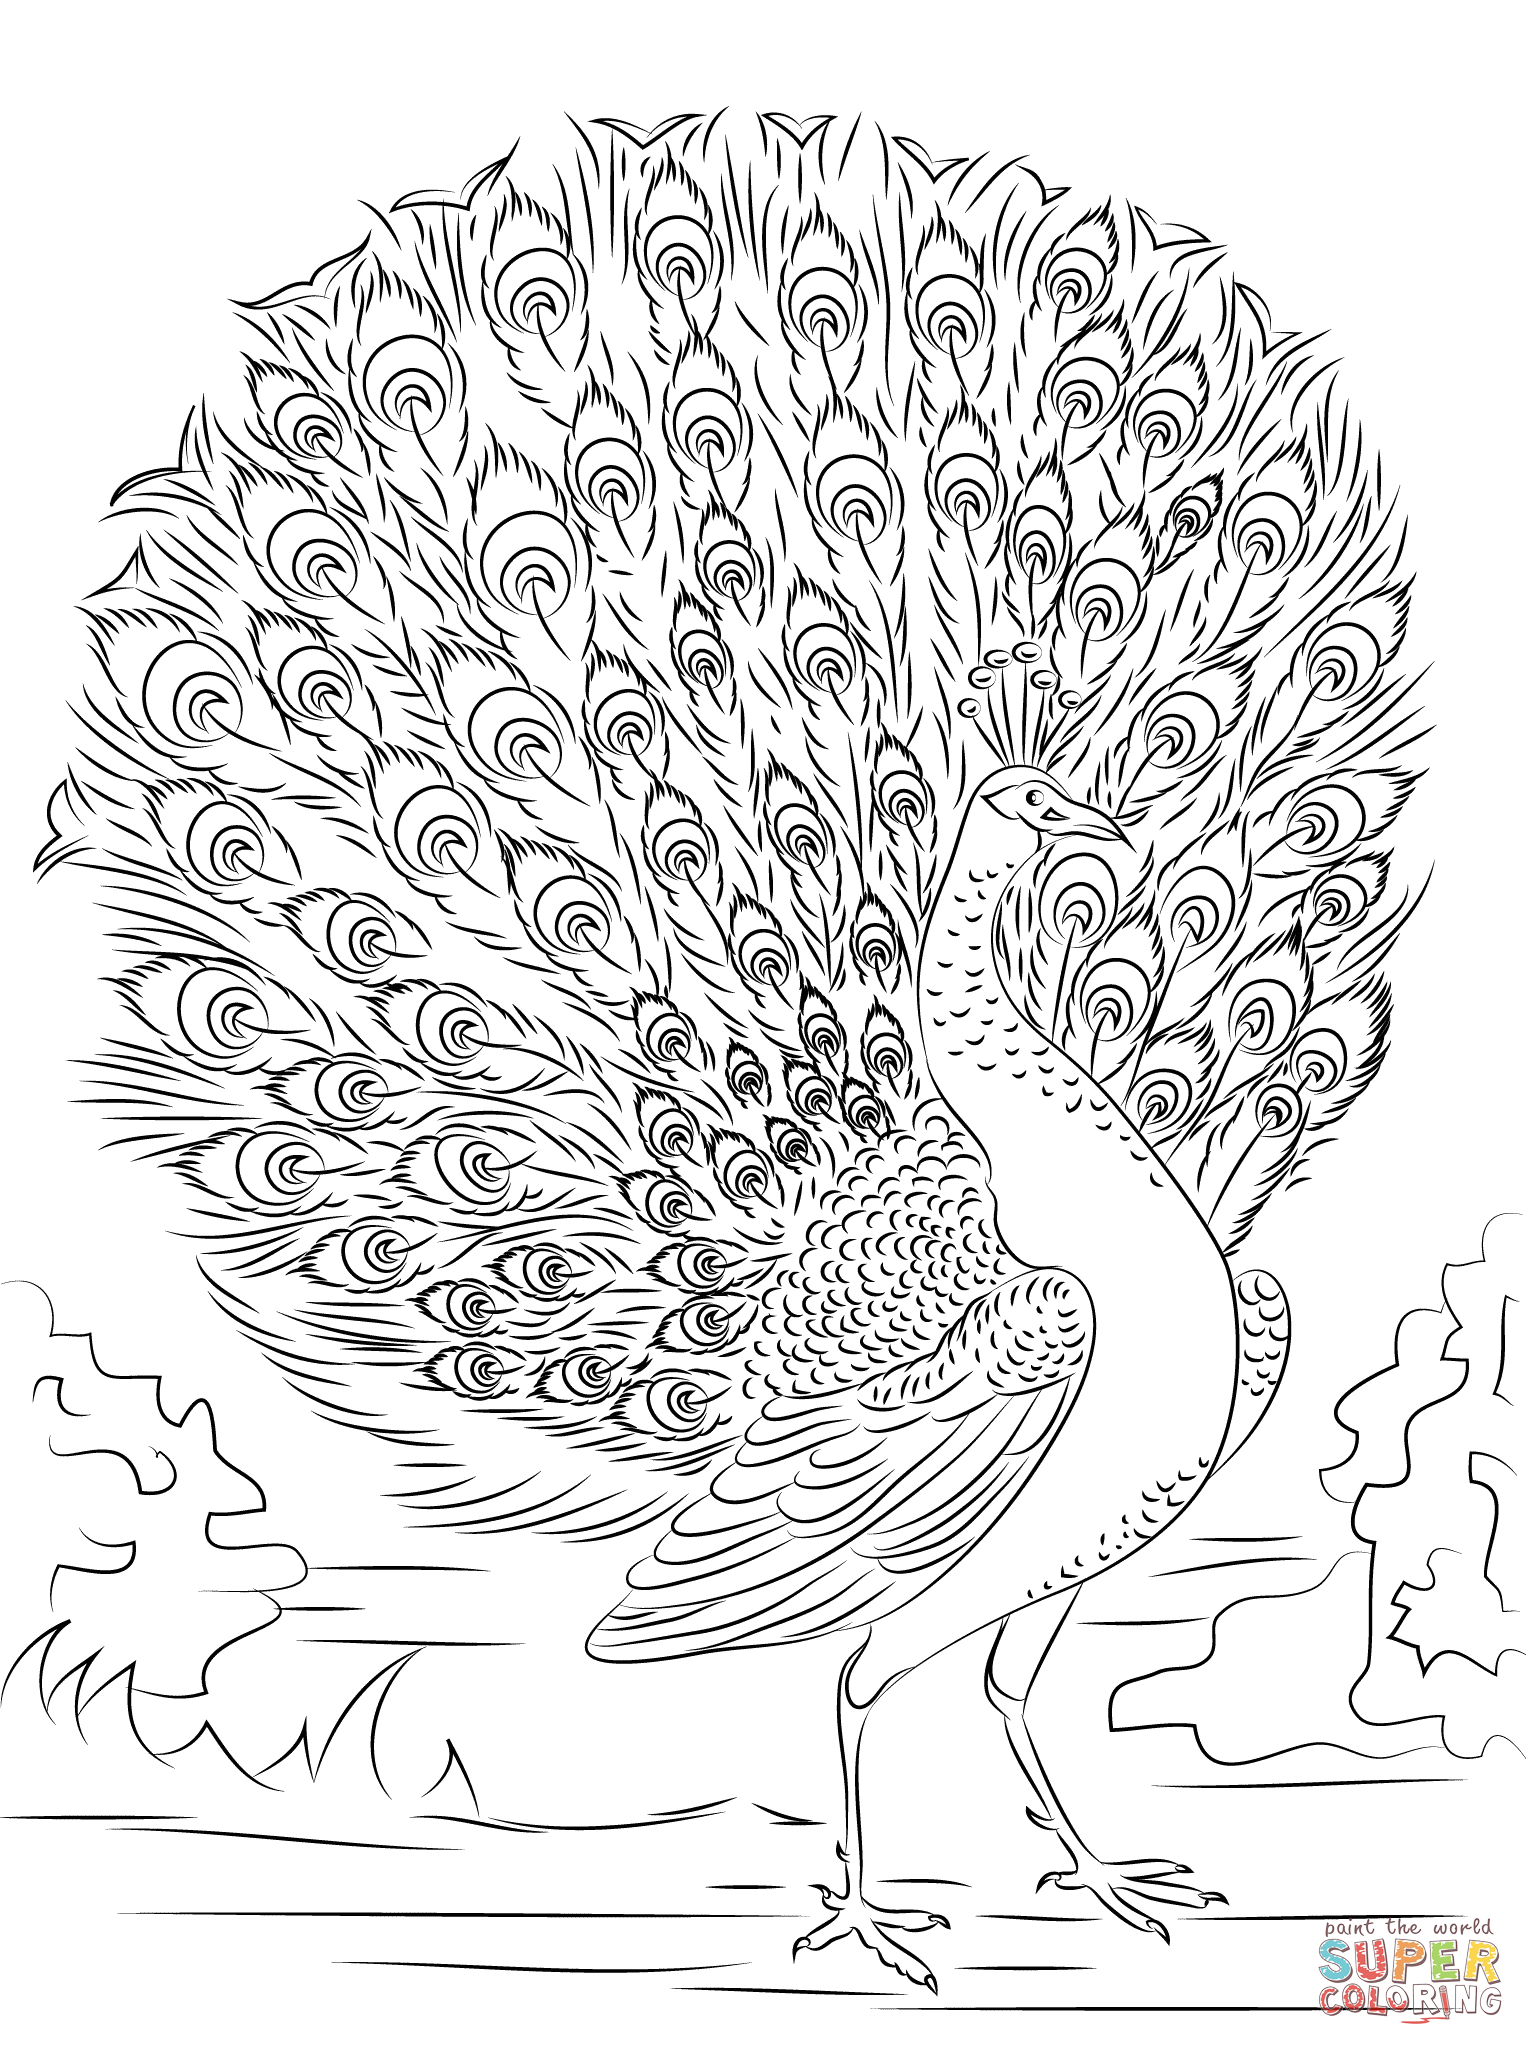 Peacock Coloring Pages | Advanced Peacock coloring page | Free ...